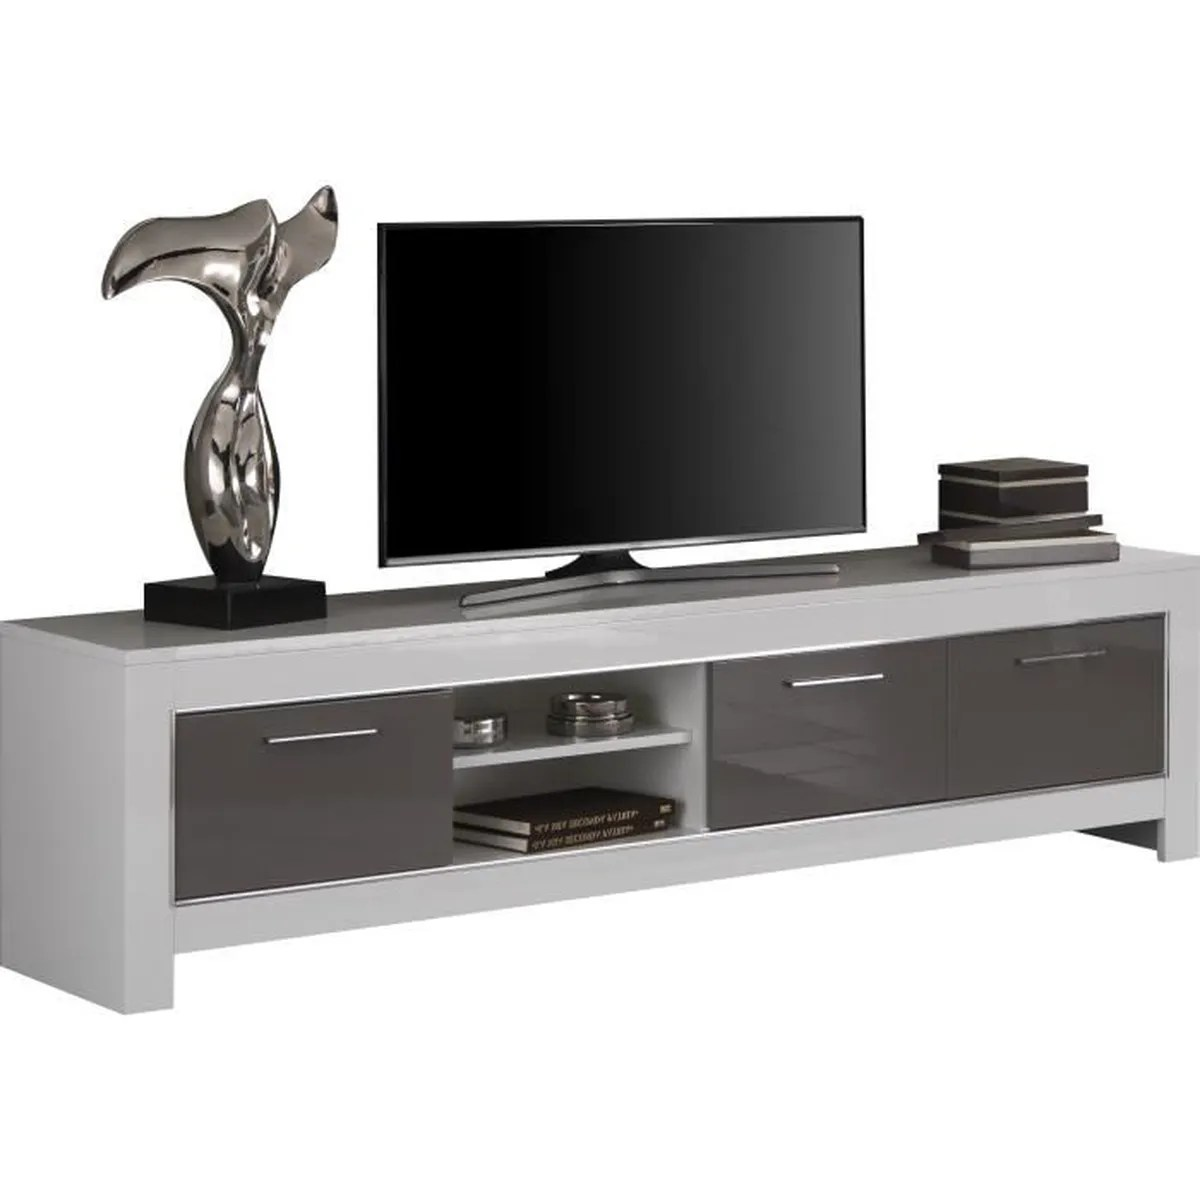 Meuble Tv C Discount Meuble Tv C Discount Maison Design Wiblia